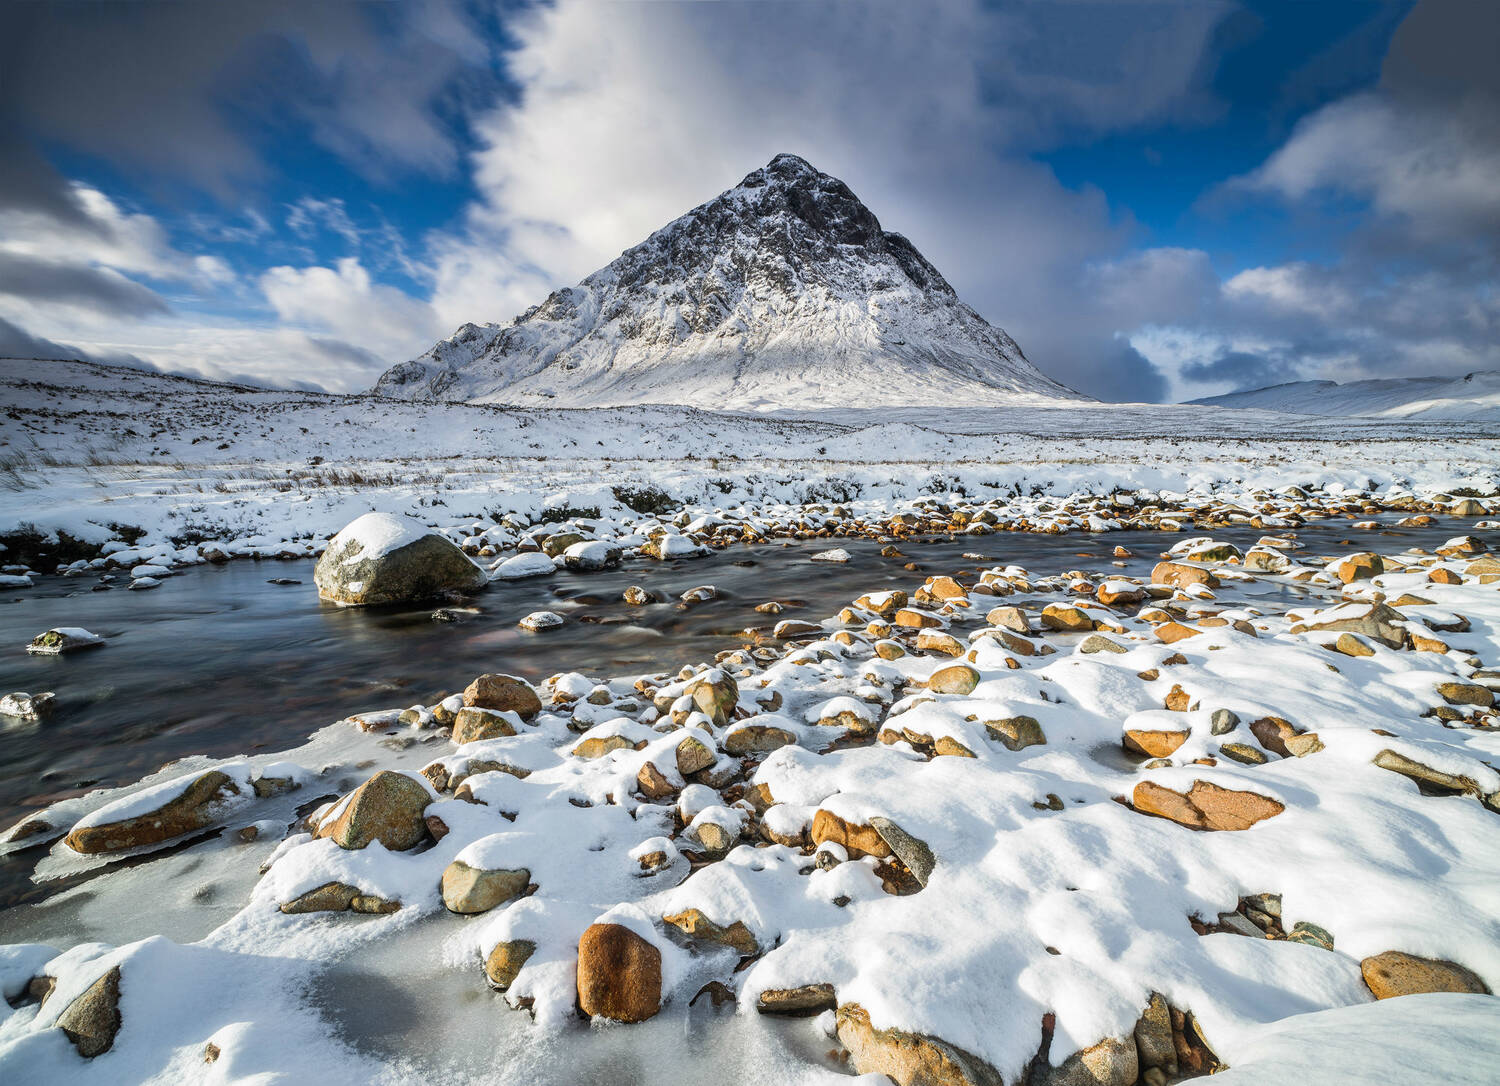 A pyramid-shaped mountain rises dramatically from a rocky moorland landscape. It is covered in snow, with dark rock exposed at the top. Clouds scud across a bright blue sky.